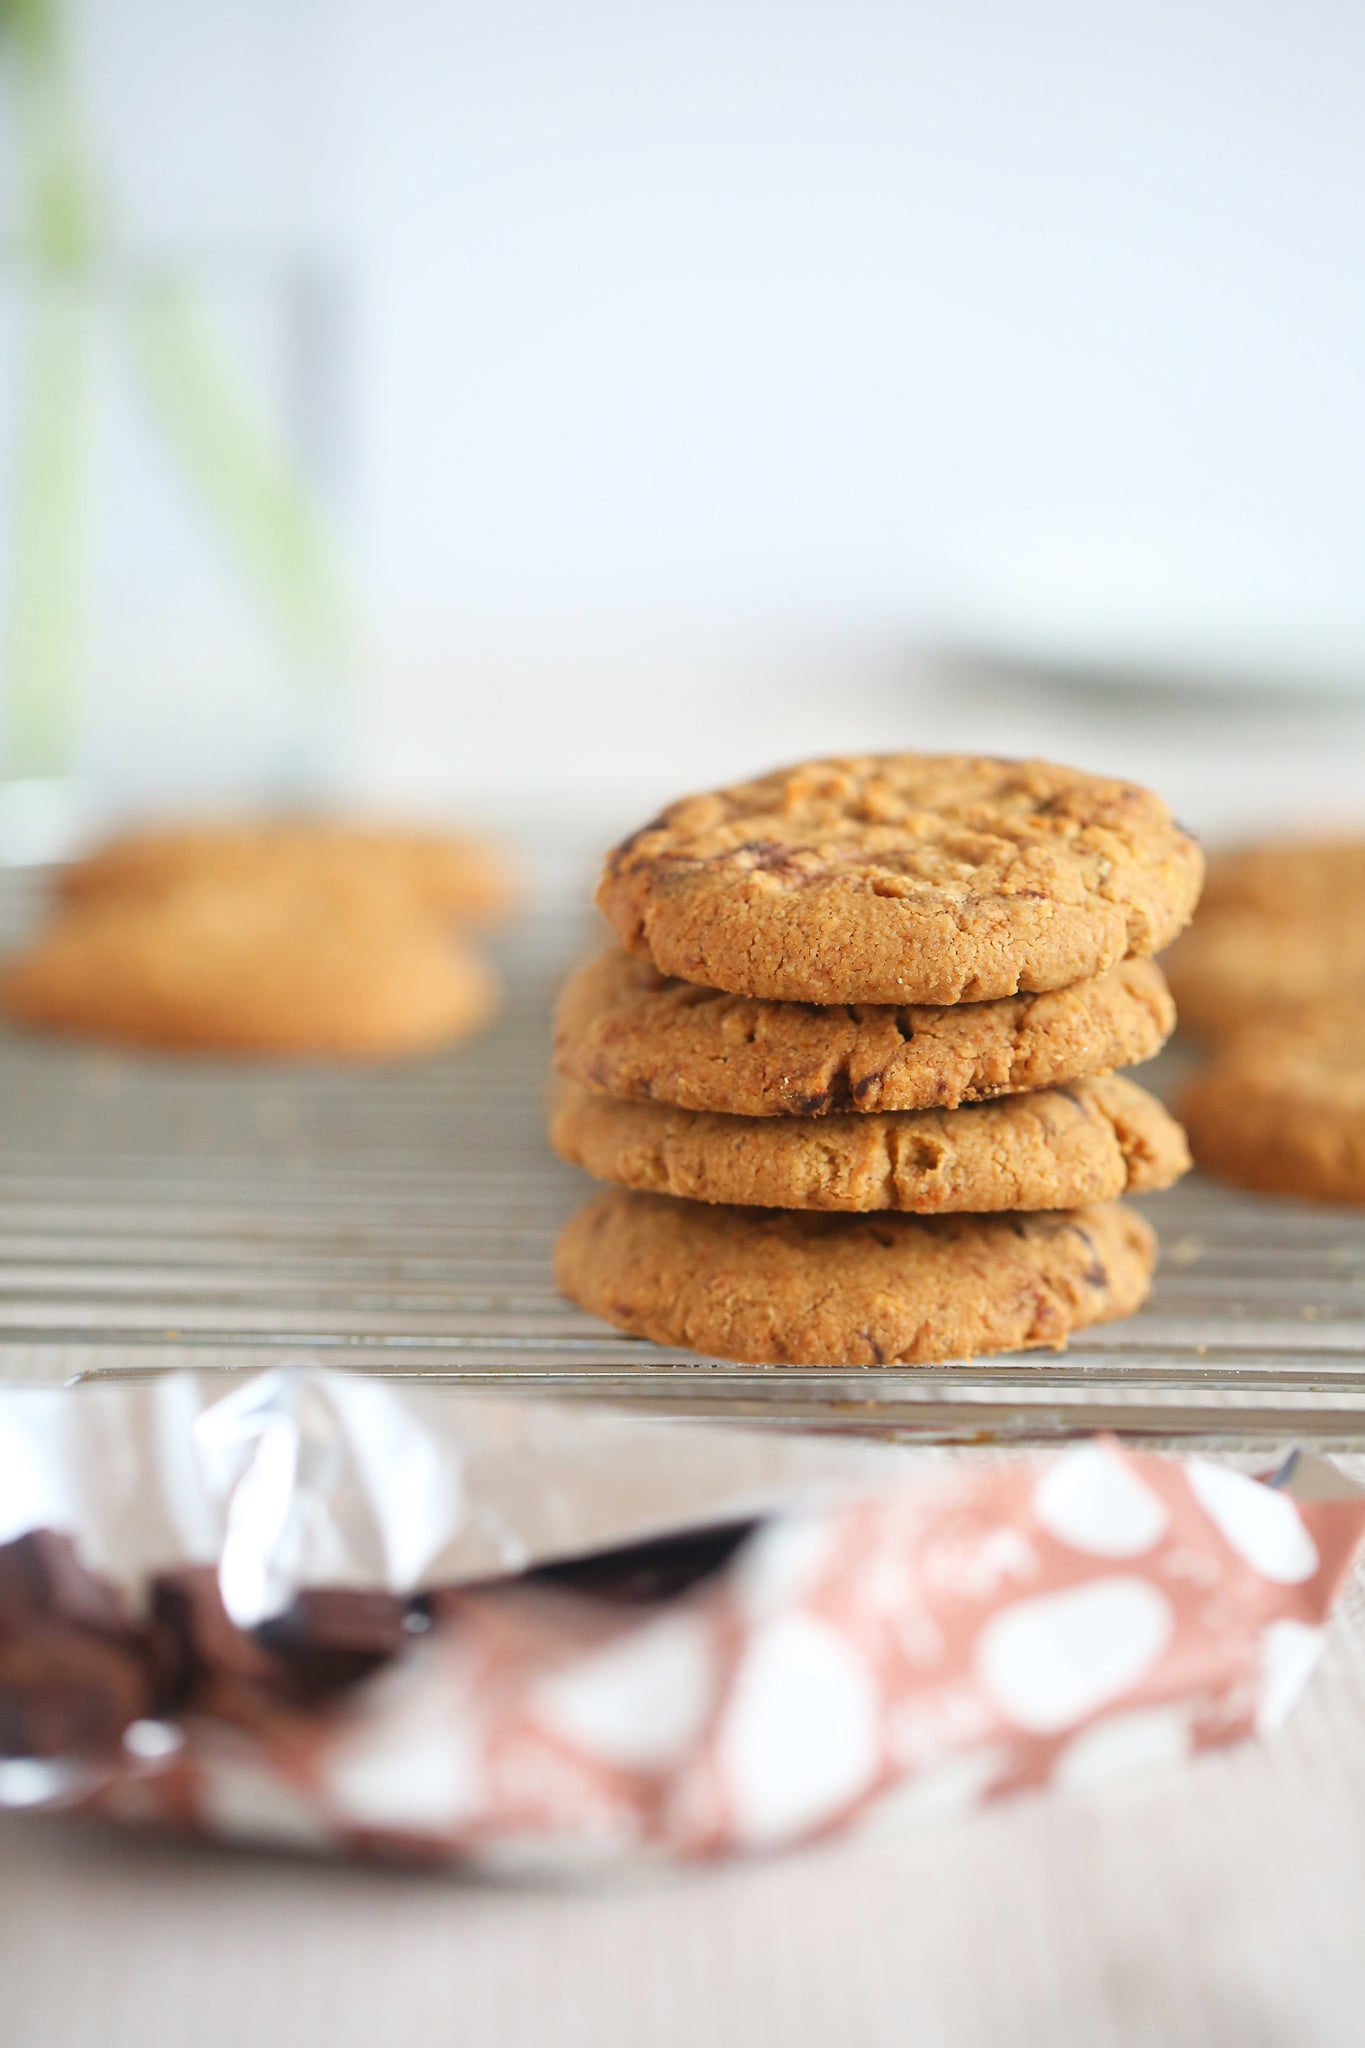 Glorious WALNUT AND CHOCOLATE CHUNK COOKIES - healthy, vegan, dairy free, low sugar, no refined sugar, wheat free, egg free, one bowl, begoodorganics 1